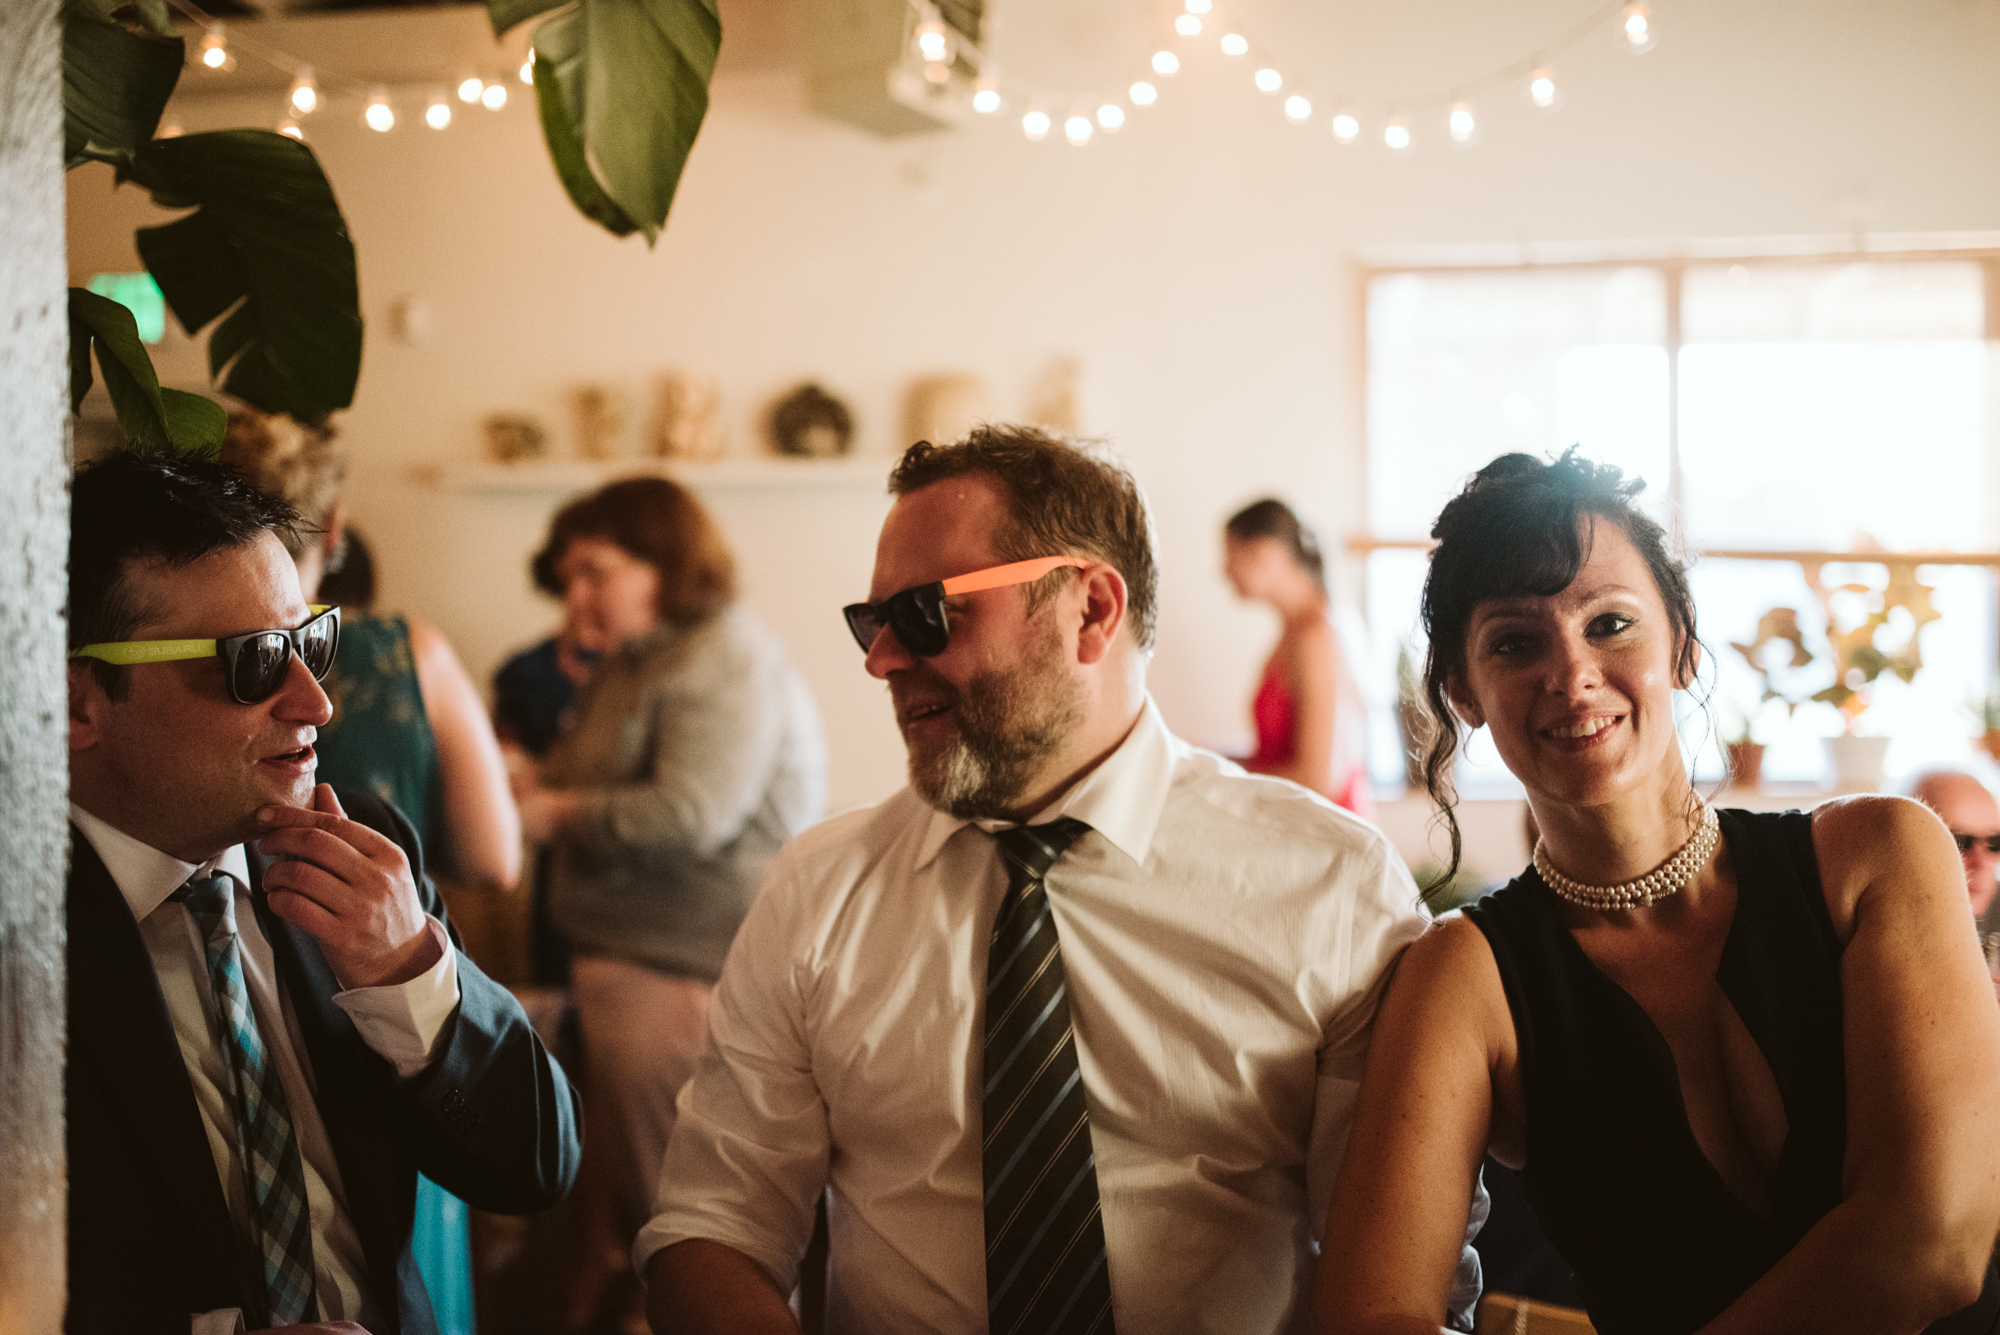 Outdoor Wedding, Casual, Simple, Baltimore, Maryland Wedding Photographer, Laid Back, September Wedding, Wedding Guests at Clavel